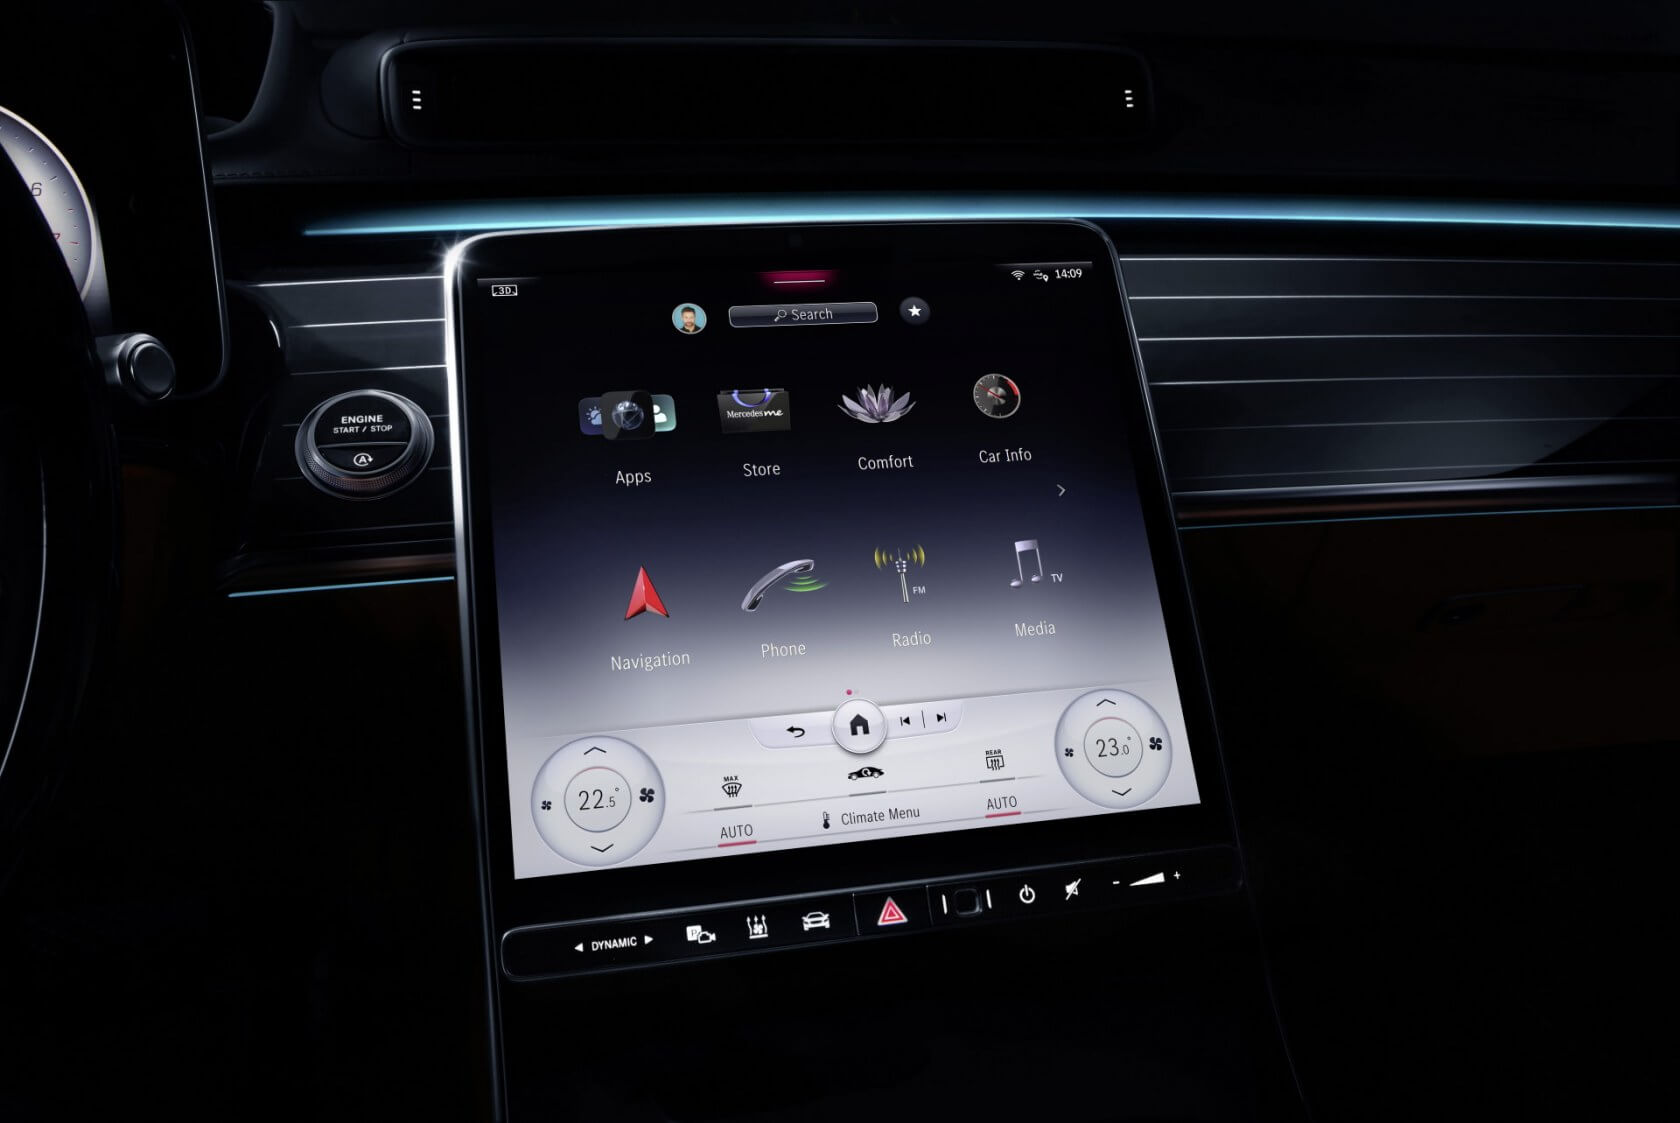 Mercedes' new in-car infotainment system replaces 27 physical buttons